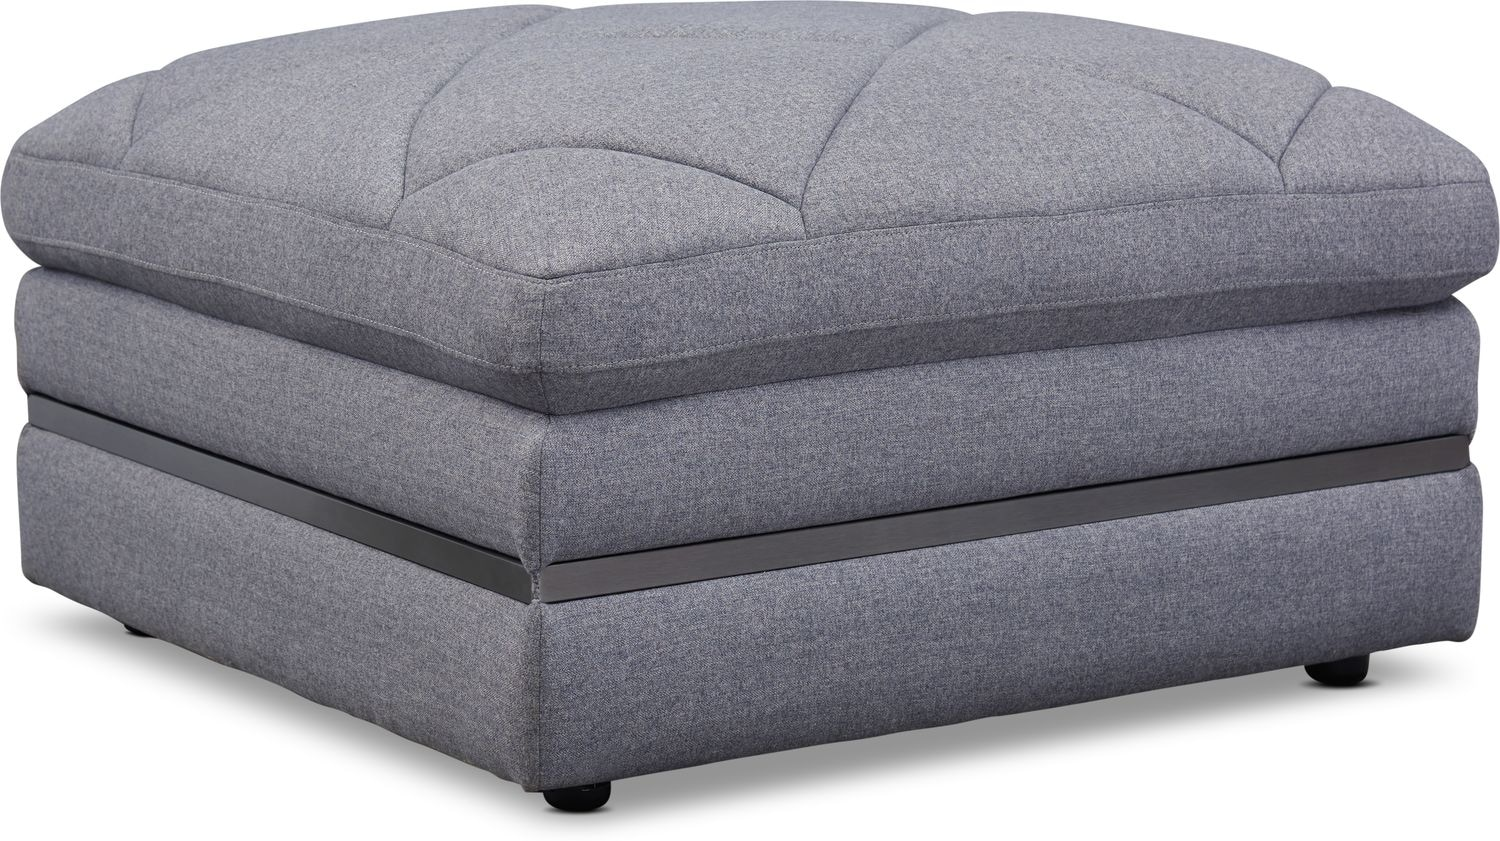 Living Room Furniture - Revel Ottoman